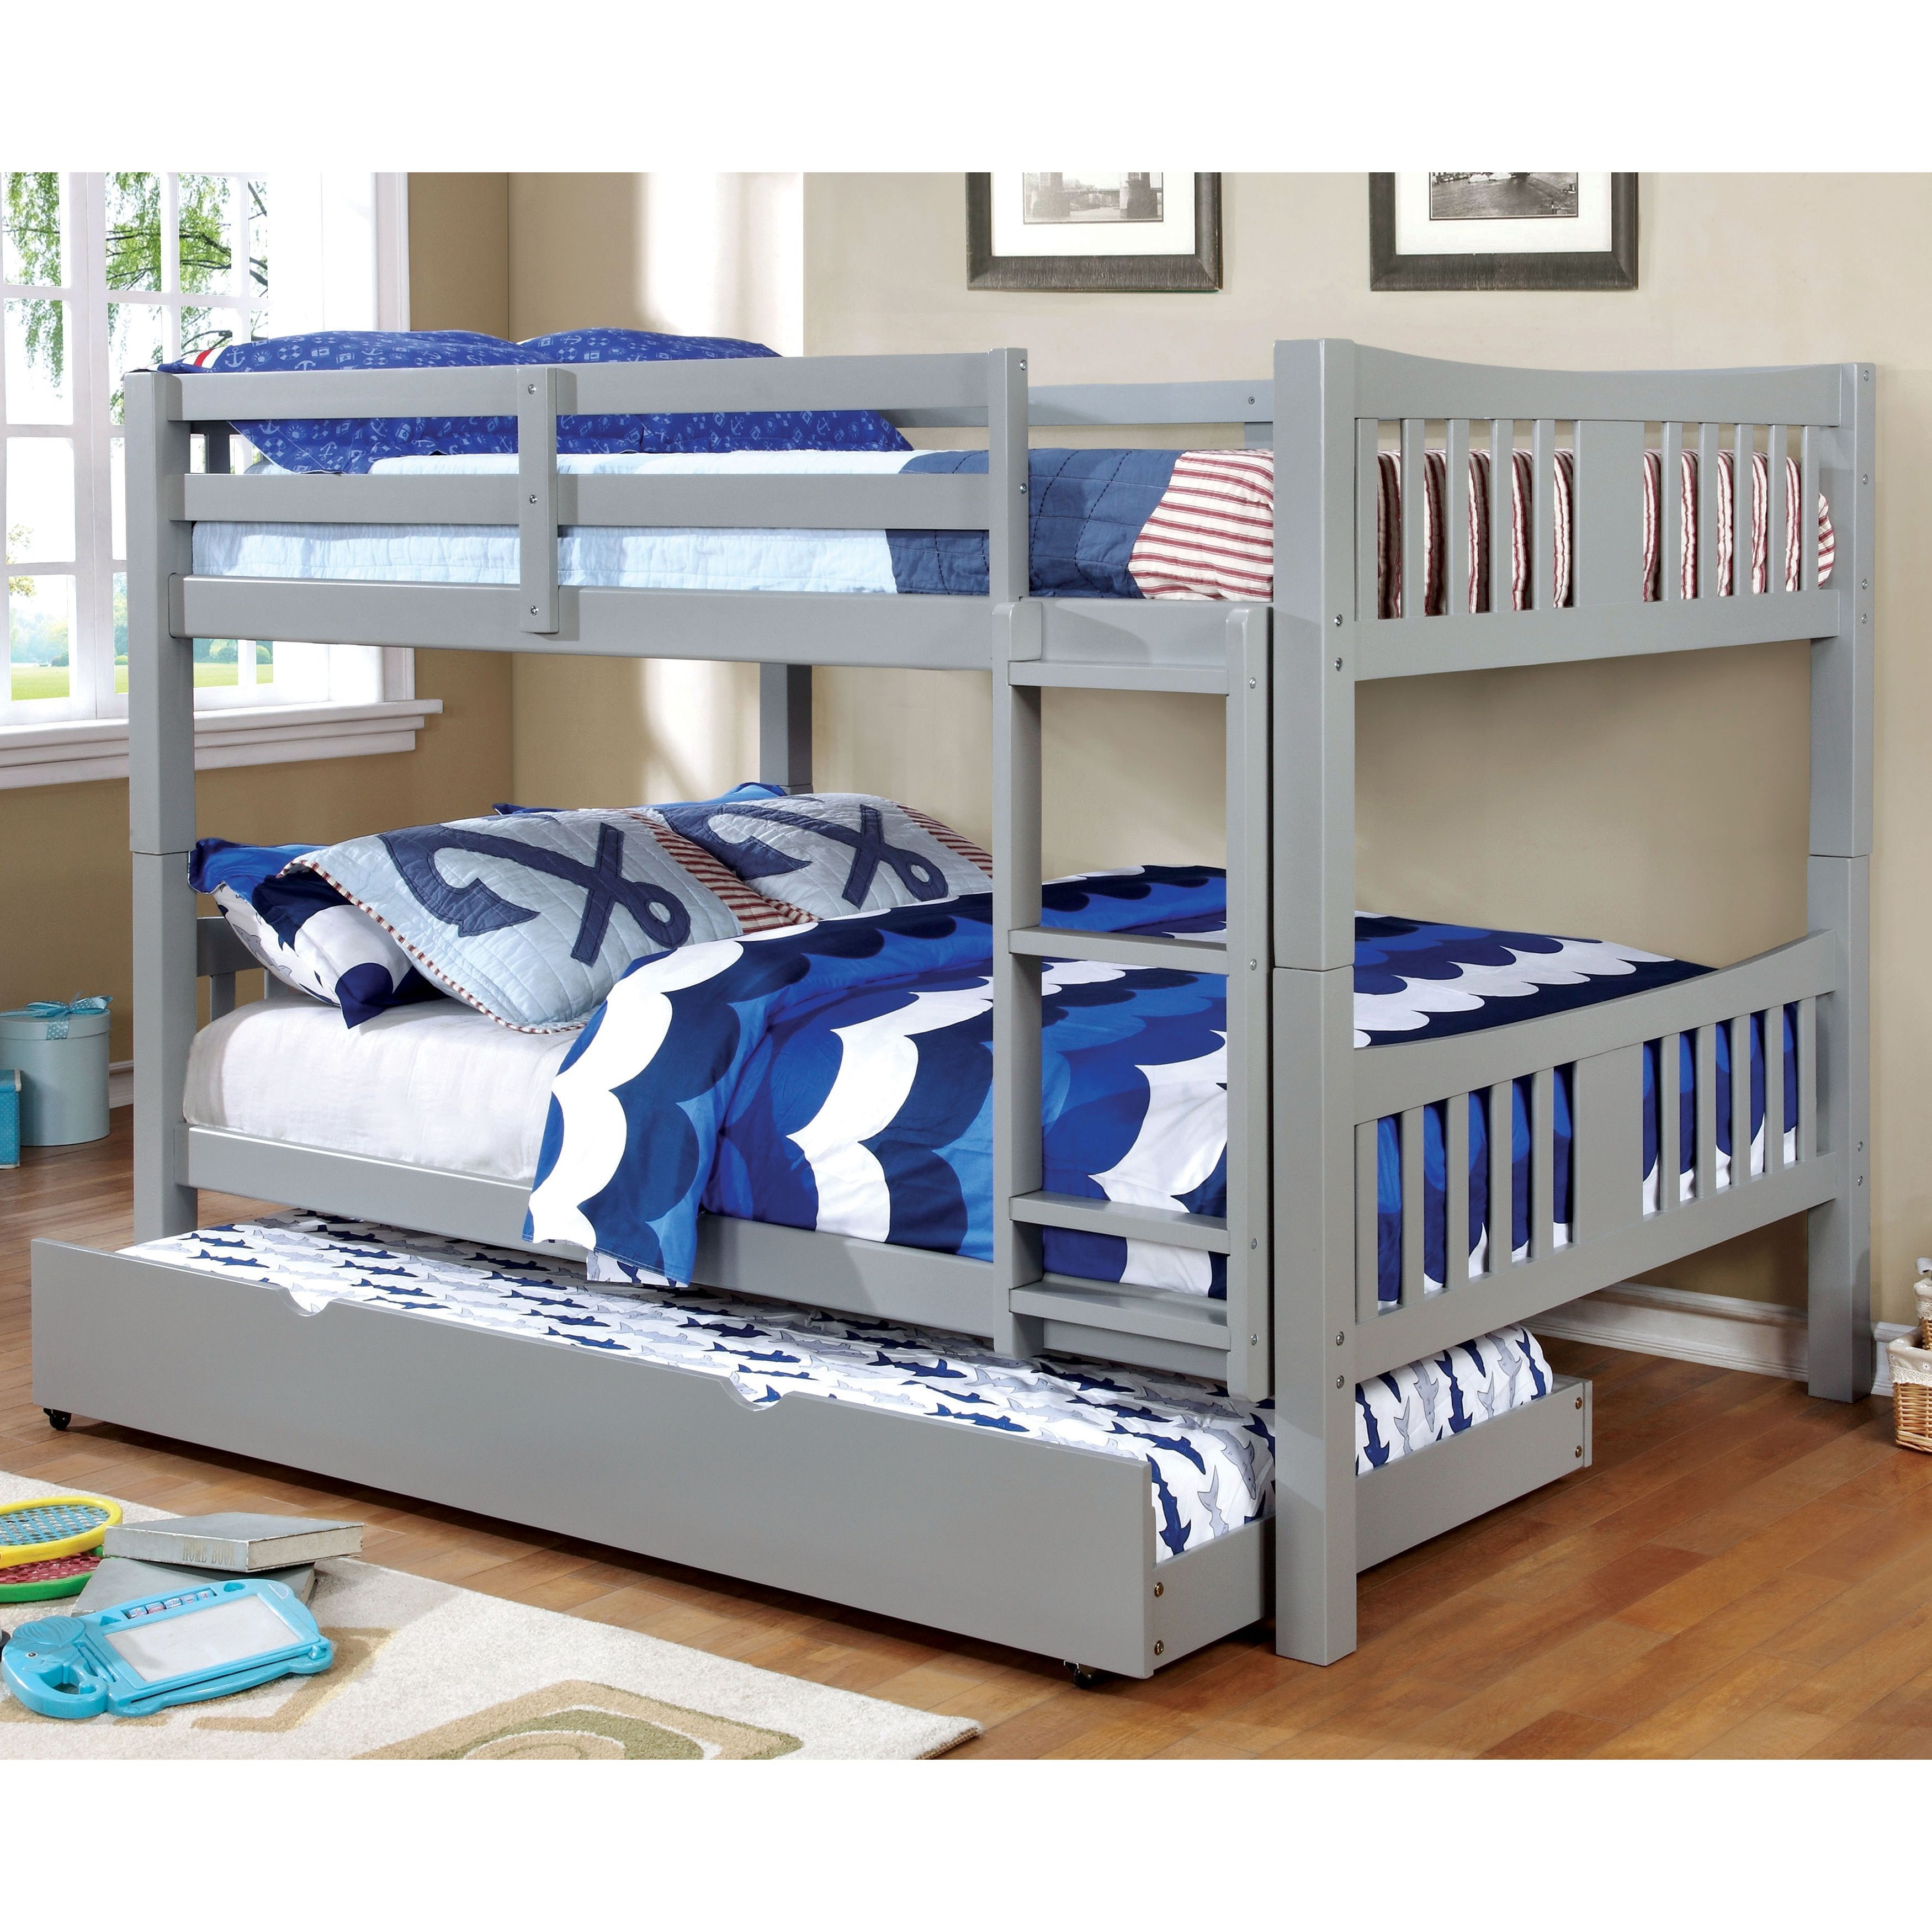 furniture merlot beds over world full bed staircase discovery bunk product twin